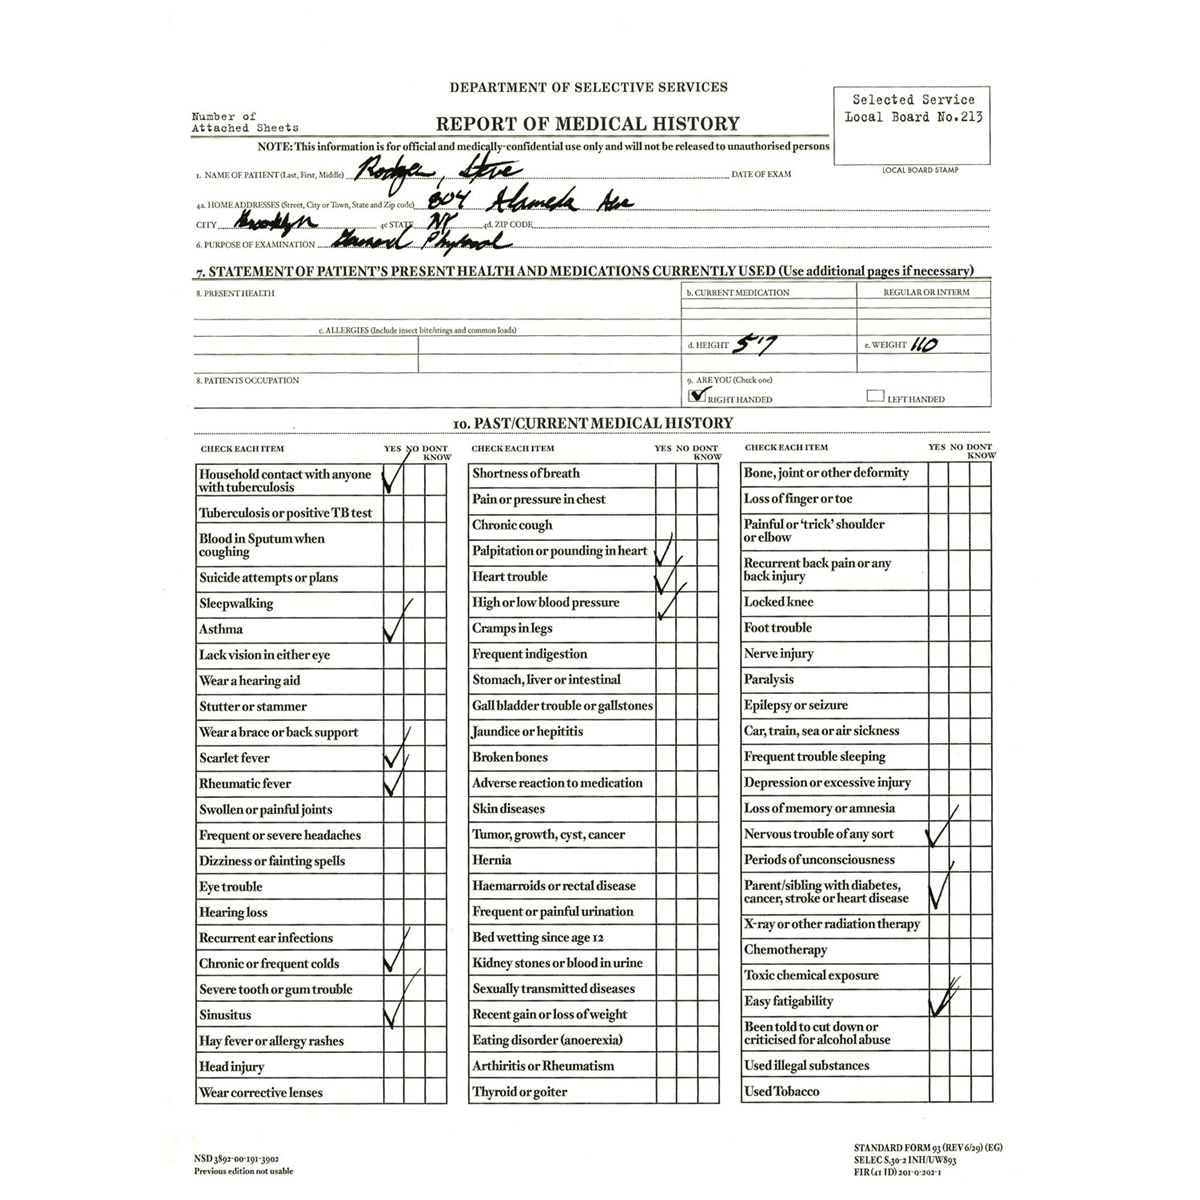 steve rogers physical exam sheet 4f rejection form with 1a and